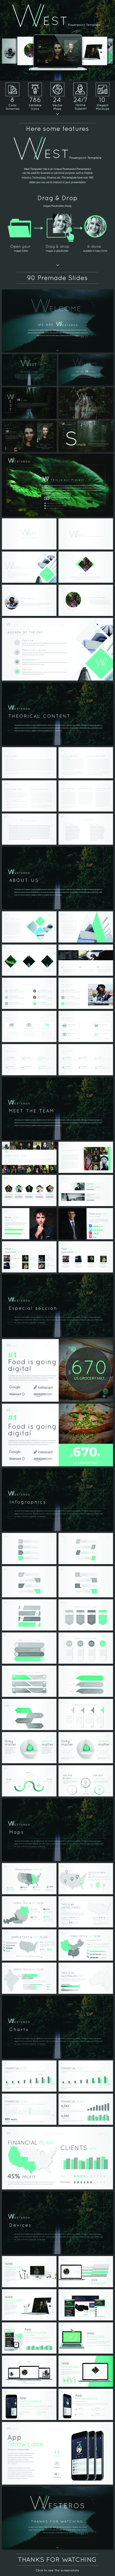 West Powerpoint Template - Presentation Templates